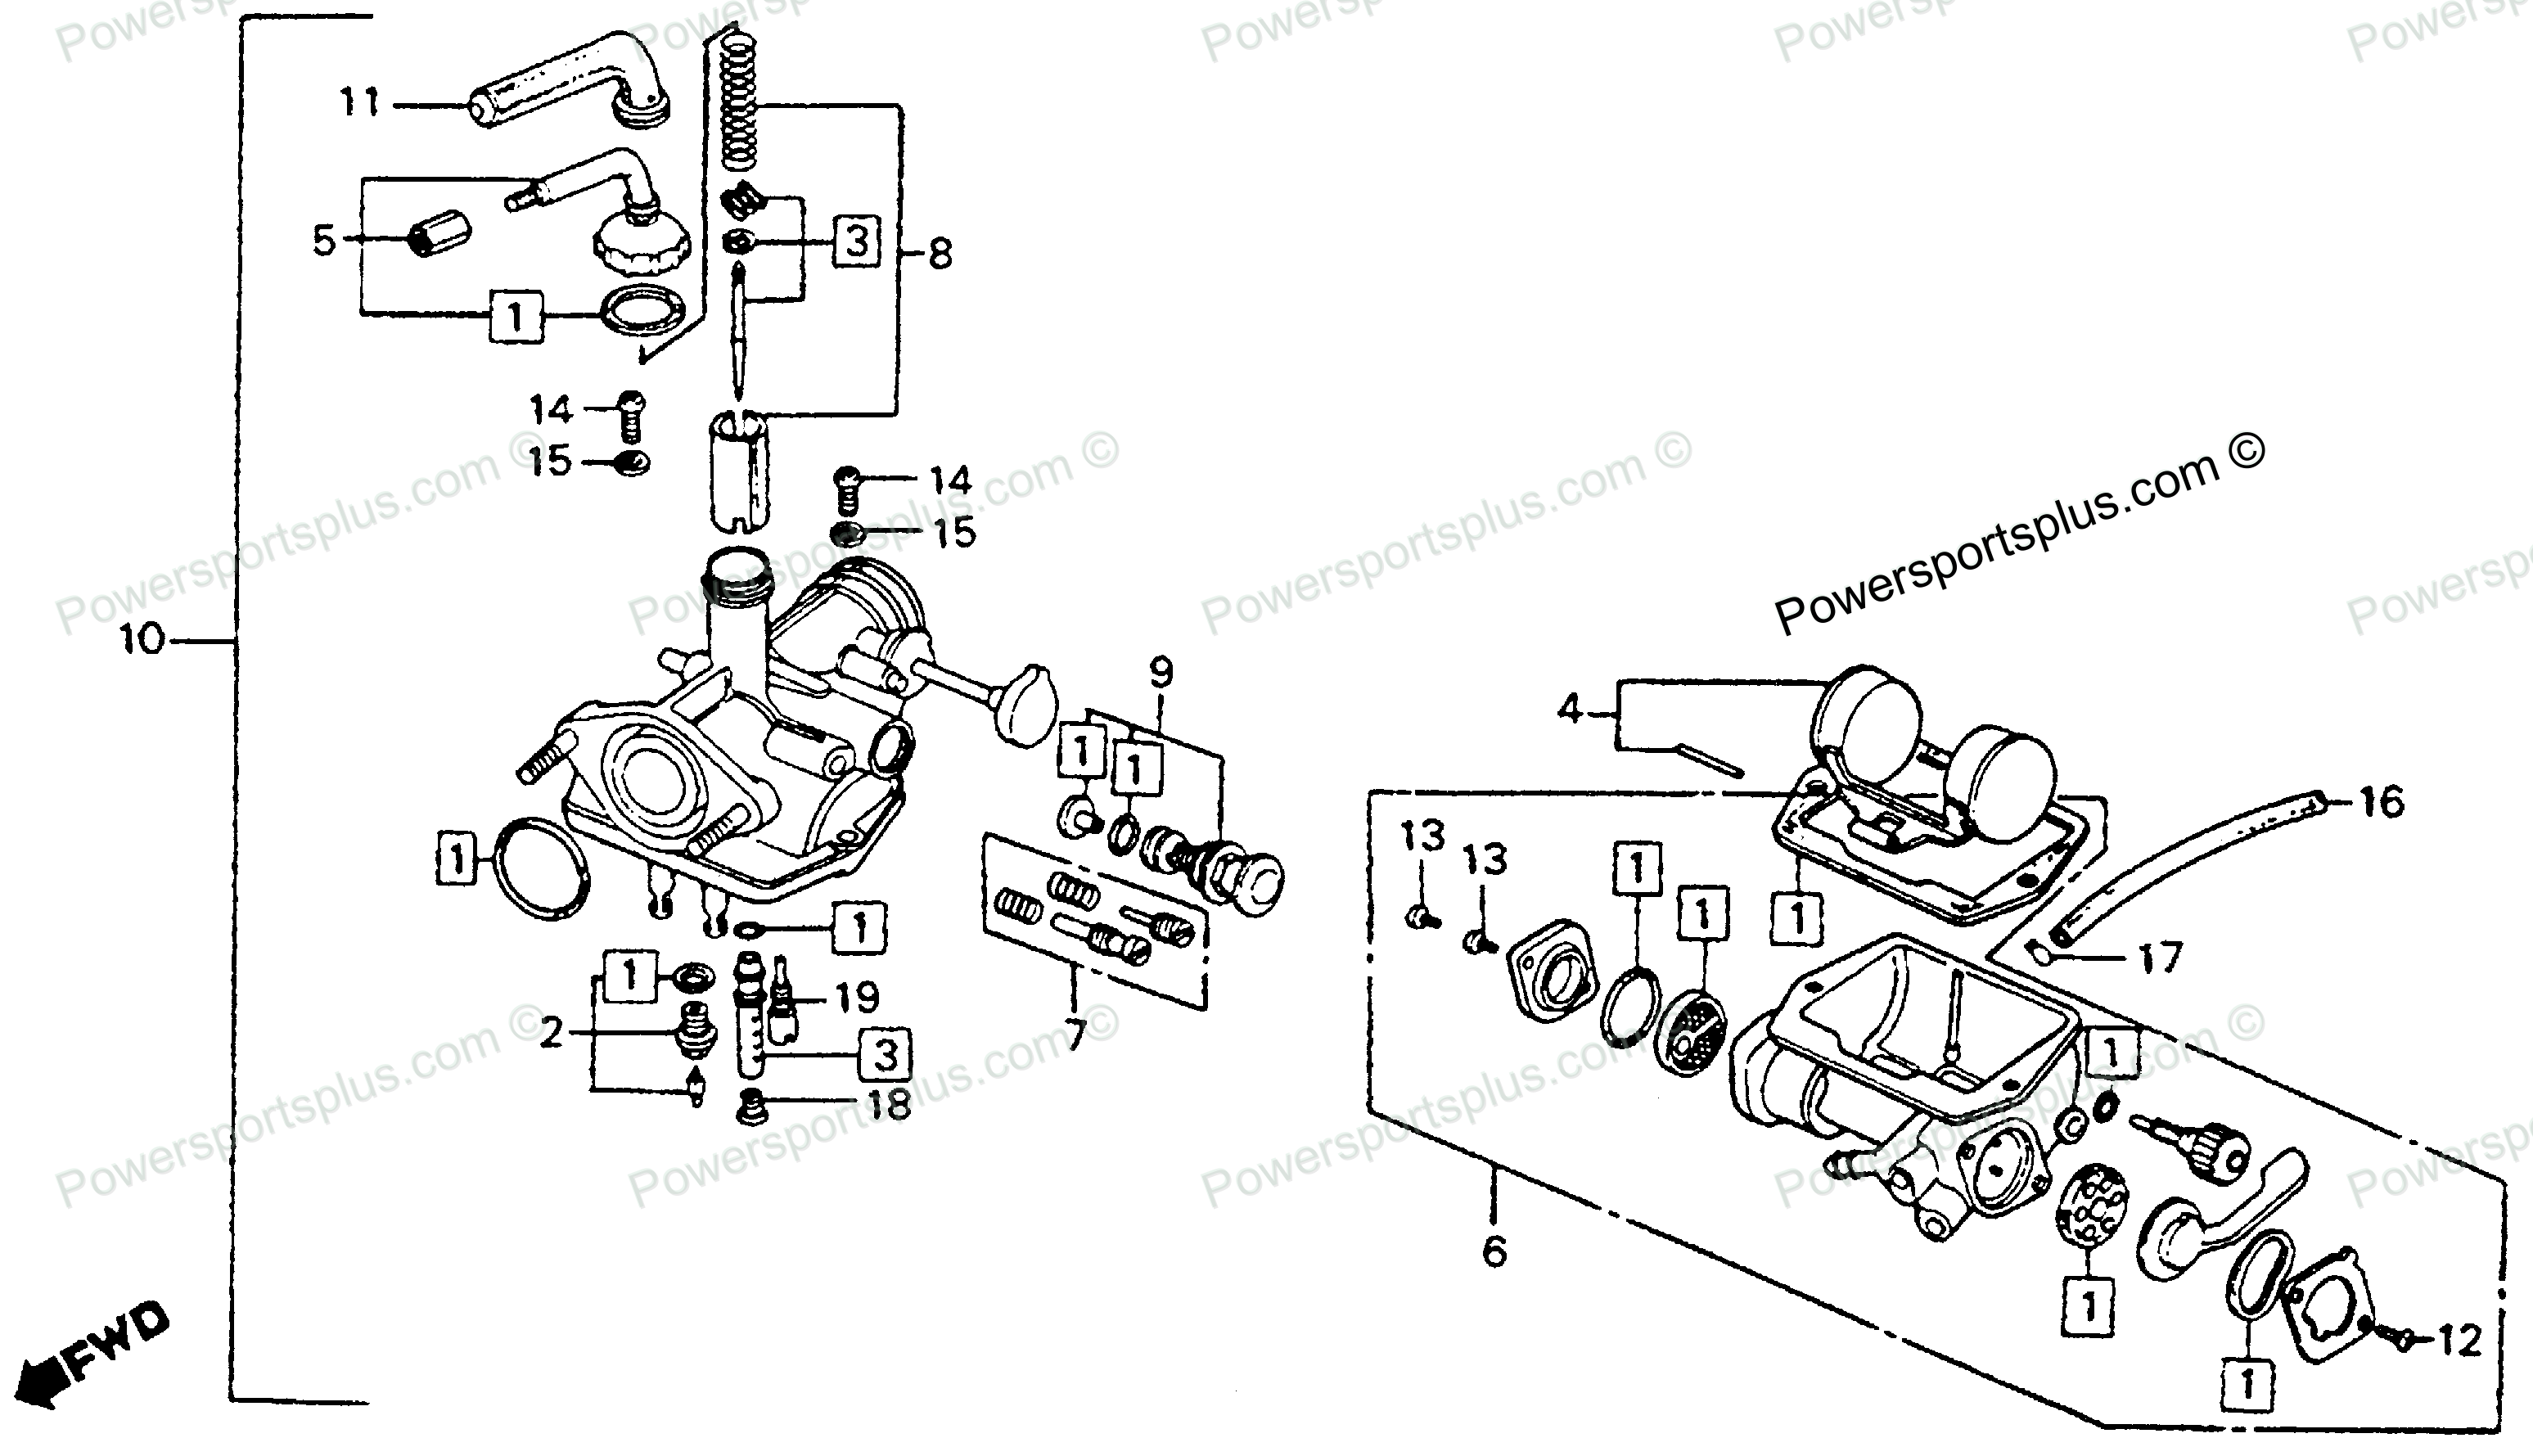 0efb18283ae24d7a2627632be070cf5c diagram of honda motorcycle parts 1976 ct90 a carburetor k6 77 honda motorcycles parts diagram at honlapkeszites.co